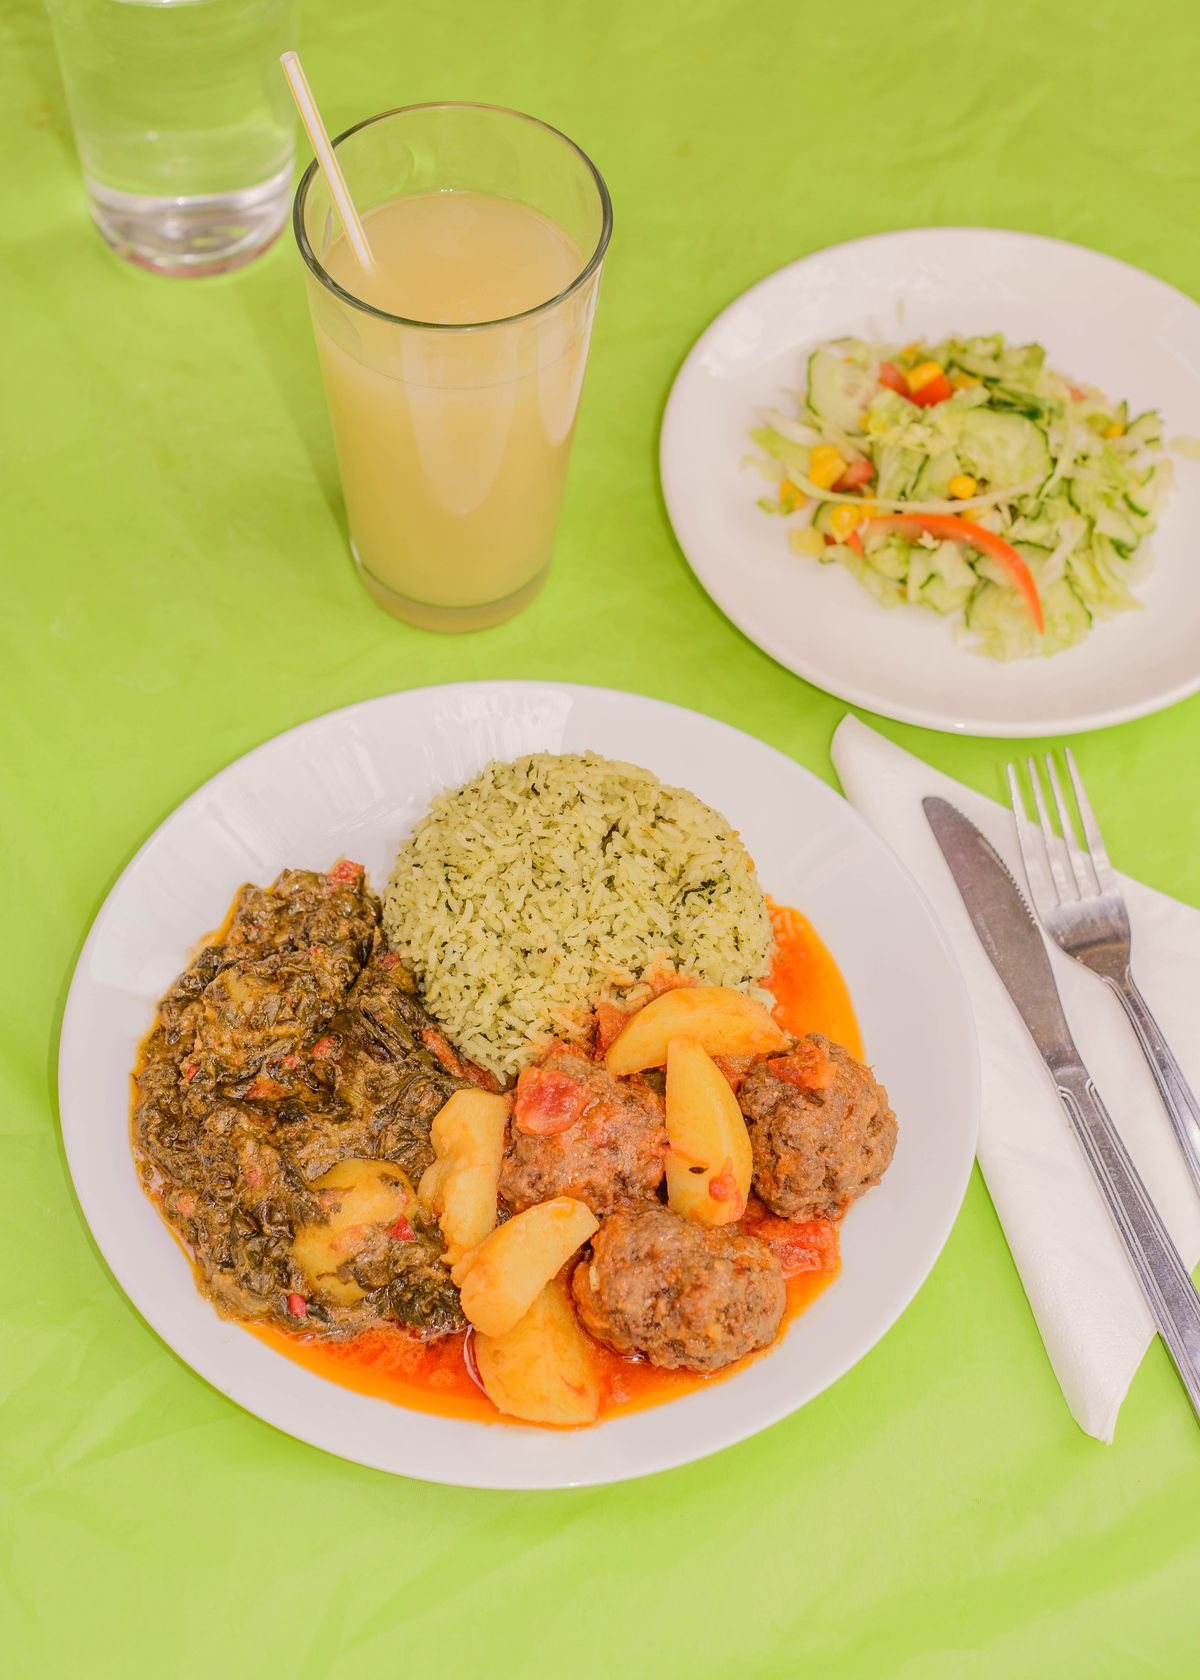 Faye Gomes' Guyanese Kaieteur Kitchen has returned in Walworth for collection, following its closure due to the COVID-19 pandemic two months ago in Elephant and Castle